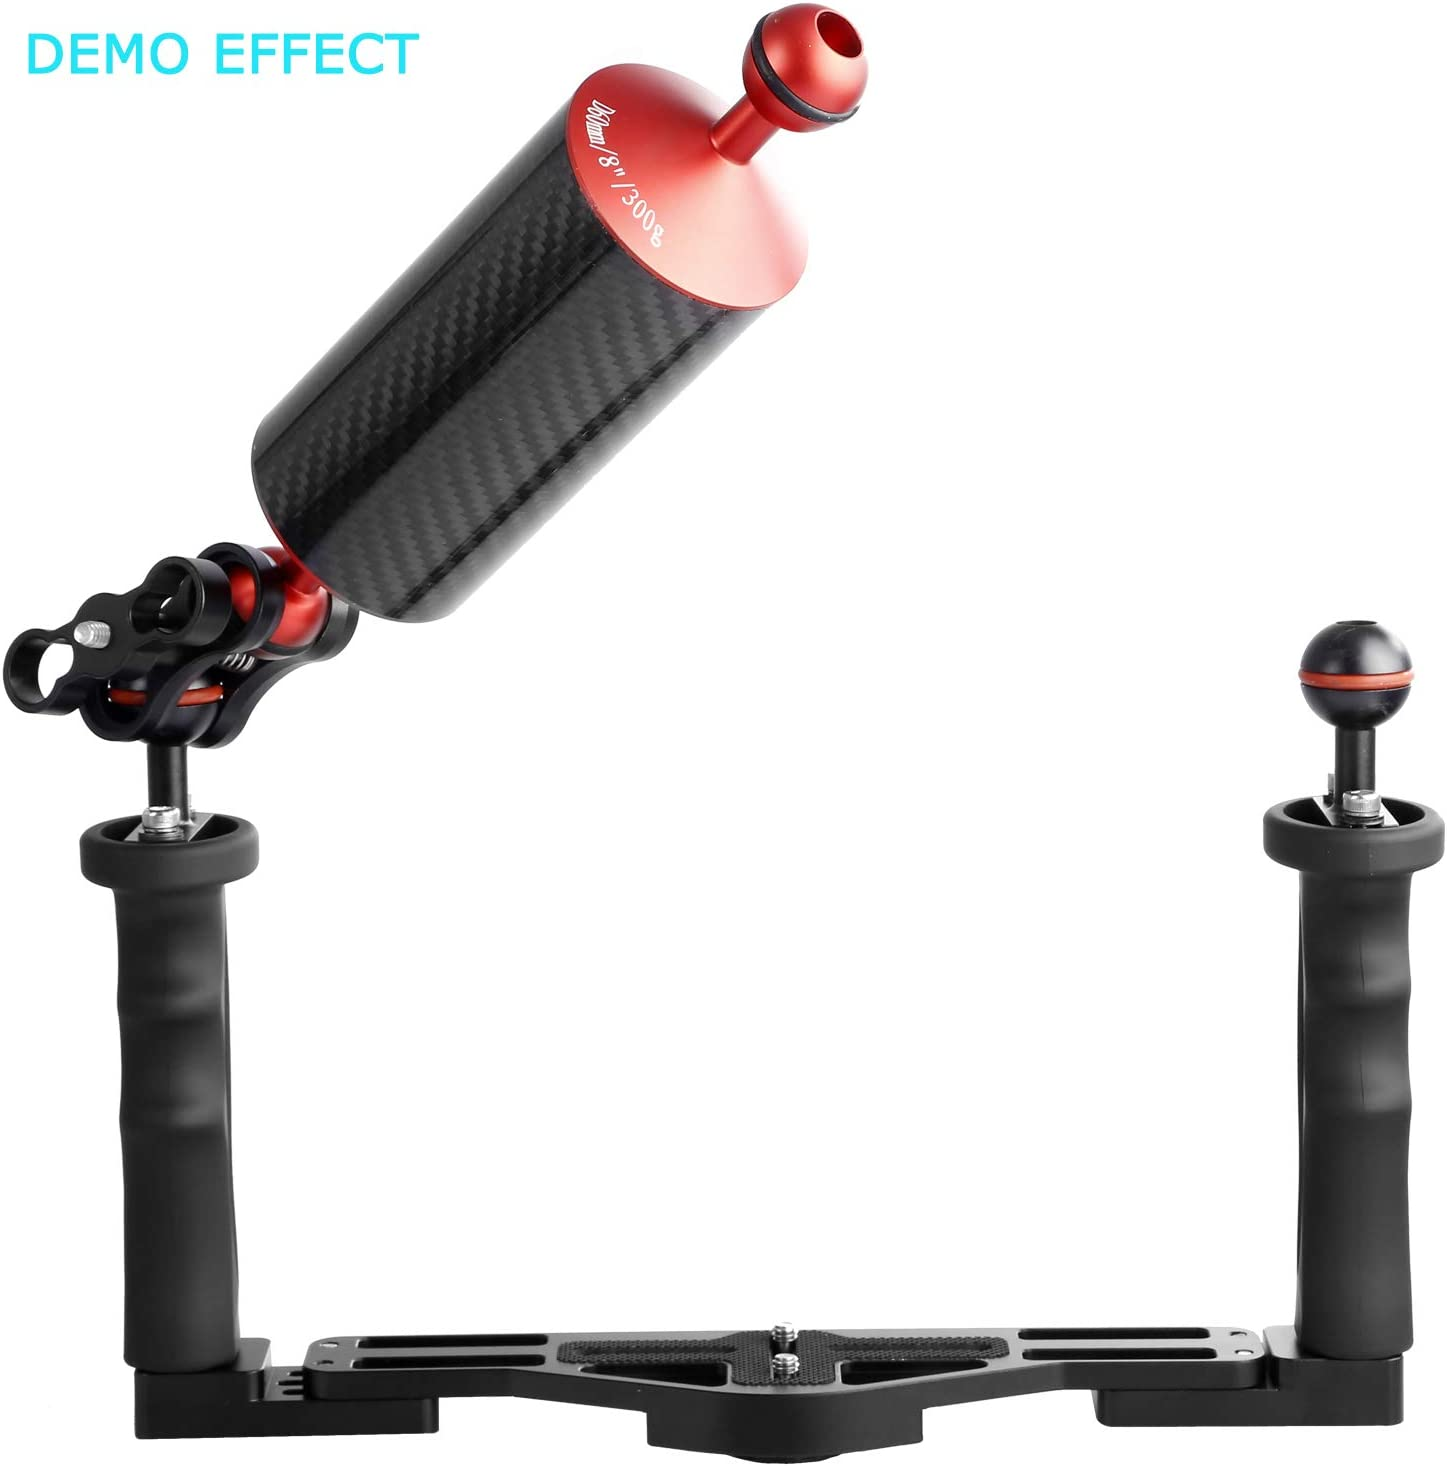 20.5 cm D60mm Carbon Fiber Underwater Float Arm for Video Light//Strobe mounting Black WEIHE 8